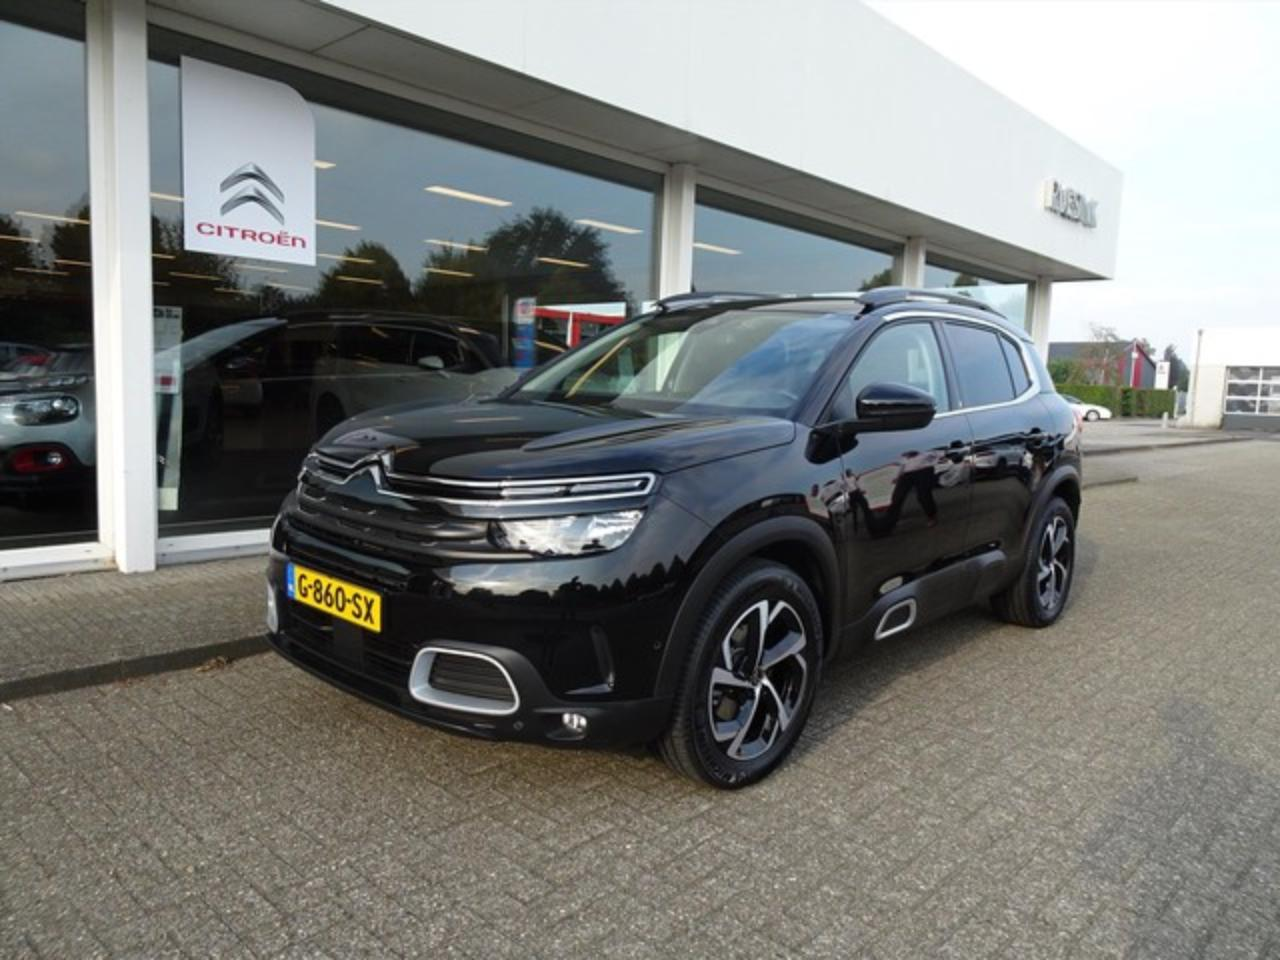 Citroën C5 Aircross 1.6 PureTech 180pk EAT8 Feel Keyless Rijklaar